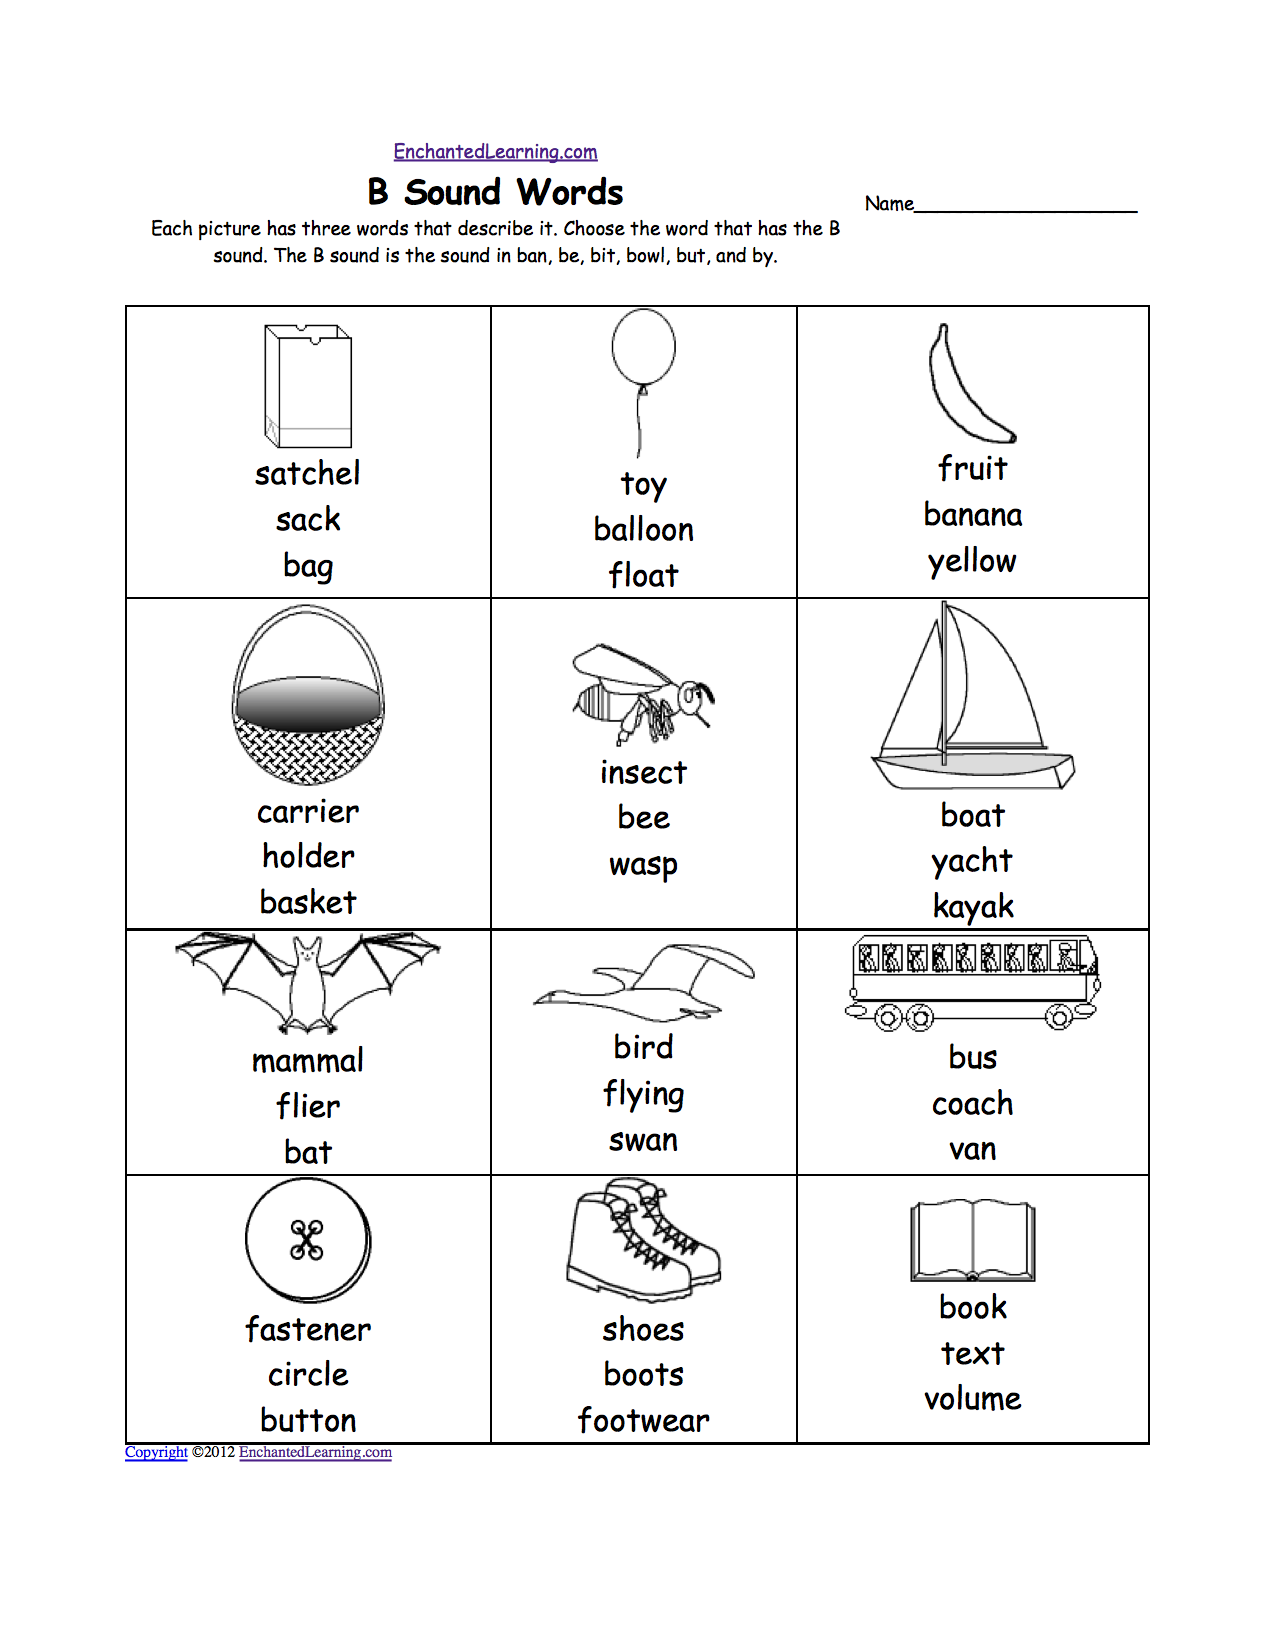 Aldiablosus  Marvellous Phonics Worksheets Multiple Choice Worksheets To Print  With Likable Quotbquot Sound Phonics Worksheet Multiple Choice Each Picture Has Three Words That Describe It Choose The Word That Has A Quotbquot Sound The Quotbquot Sound Is The Sound  With Awesome Relationship Counseling Worksheets Also Workout Worksheet In Addition Partial Products Method For Multiplication Worksheets And Division Area Model Worksheets As Well As Free Rd Grade Reading Comprehension Worksheets Additionally Prime Factorization Worksheet Th Grade From Enchantedlearningcom With Aldiablosus  Likable Phonics Worksheets Multiple Choice Worksheets To Print  With Awesome Quotbquot Sound Phonics Worksheet Multiple Choice Each Picture Has Three Words That Describe It Choose The Word That Has A Quotbquot Sound The Quotbquot Sound Is The Sound  And Marvellous Relationship Counseling Worksheets Also Workout Worksheet In Addition Partial Products Method For Multiplication Worksheets From Enchantedlearningcom